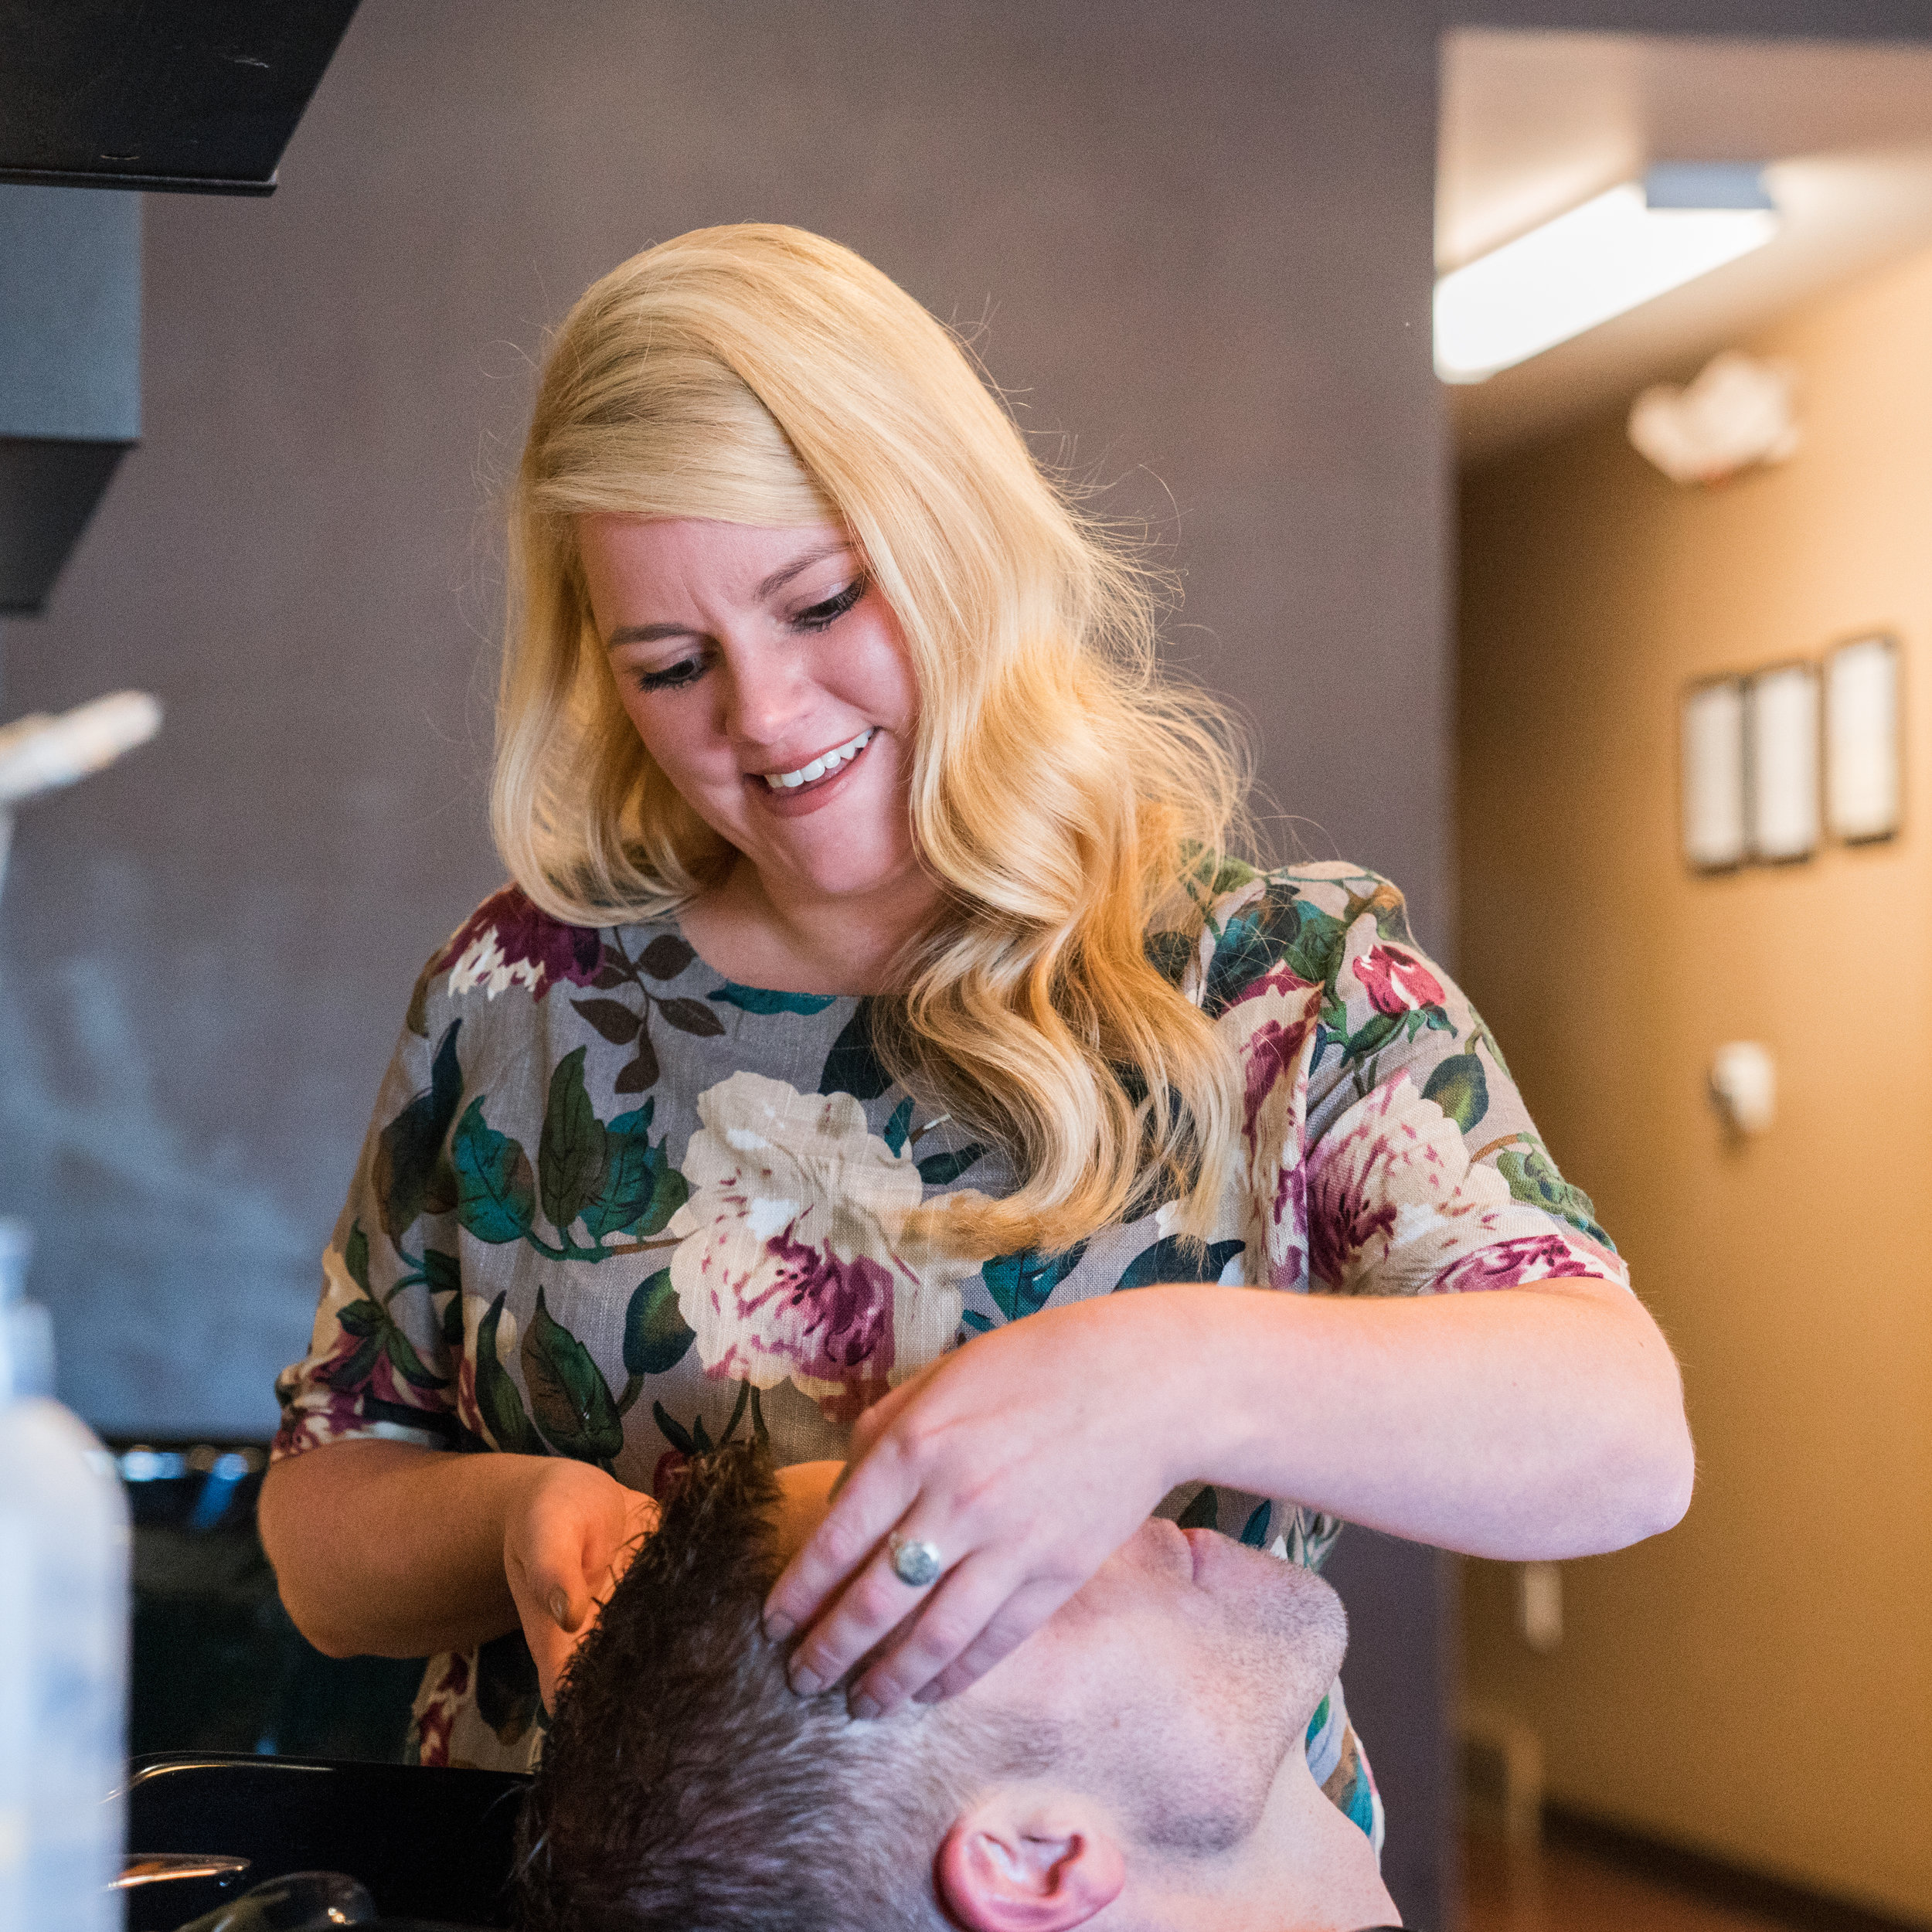 Natalie Frost  Stylist  The newest addition to The Laura Gregory Salon, Natalie is a graduate of The Aveda Institute of Columbus. After graduation, she was employed at a corporate salon for 2 years that specialized in men's and short haircuts. Being extremely talented in many other areas of hair design, particularly cutting and styling, Natalie searched for a salon where she could contribute those talents. Since joining The Laura Gregory Salon, Natalie has attended many classes, becoming certified with L'Oreal Professionnel color systems and Simply Smooth Keratin Treatment Systems. She excels in formal and special occasion styles.